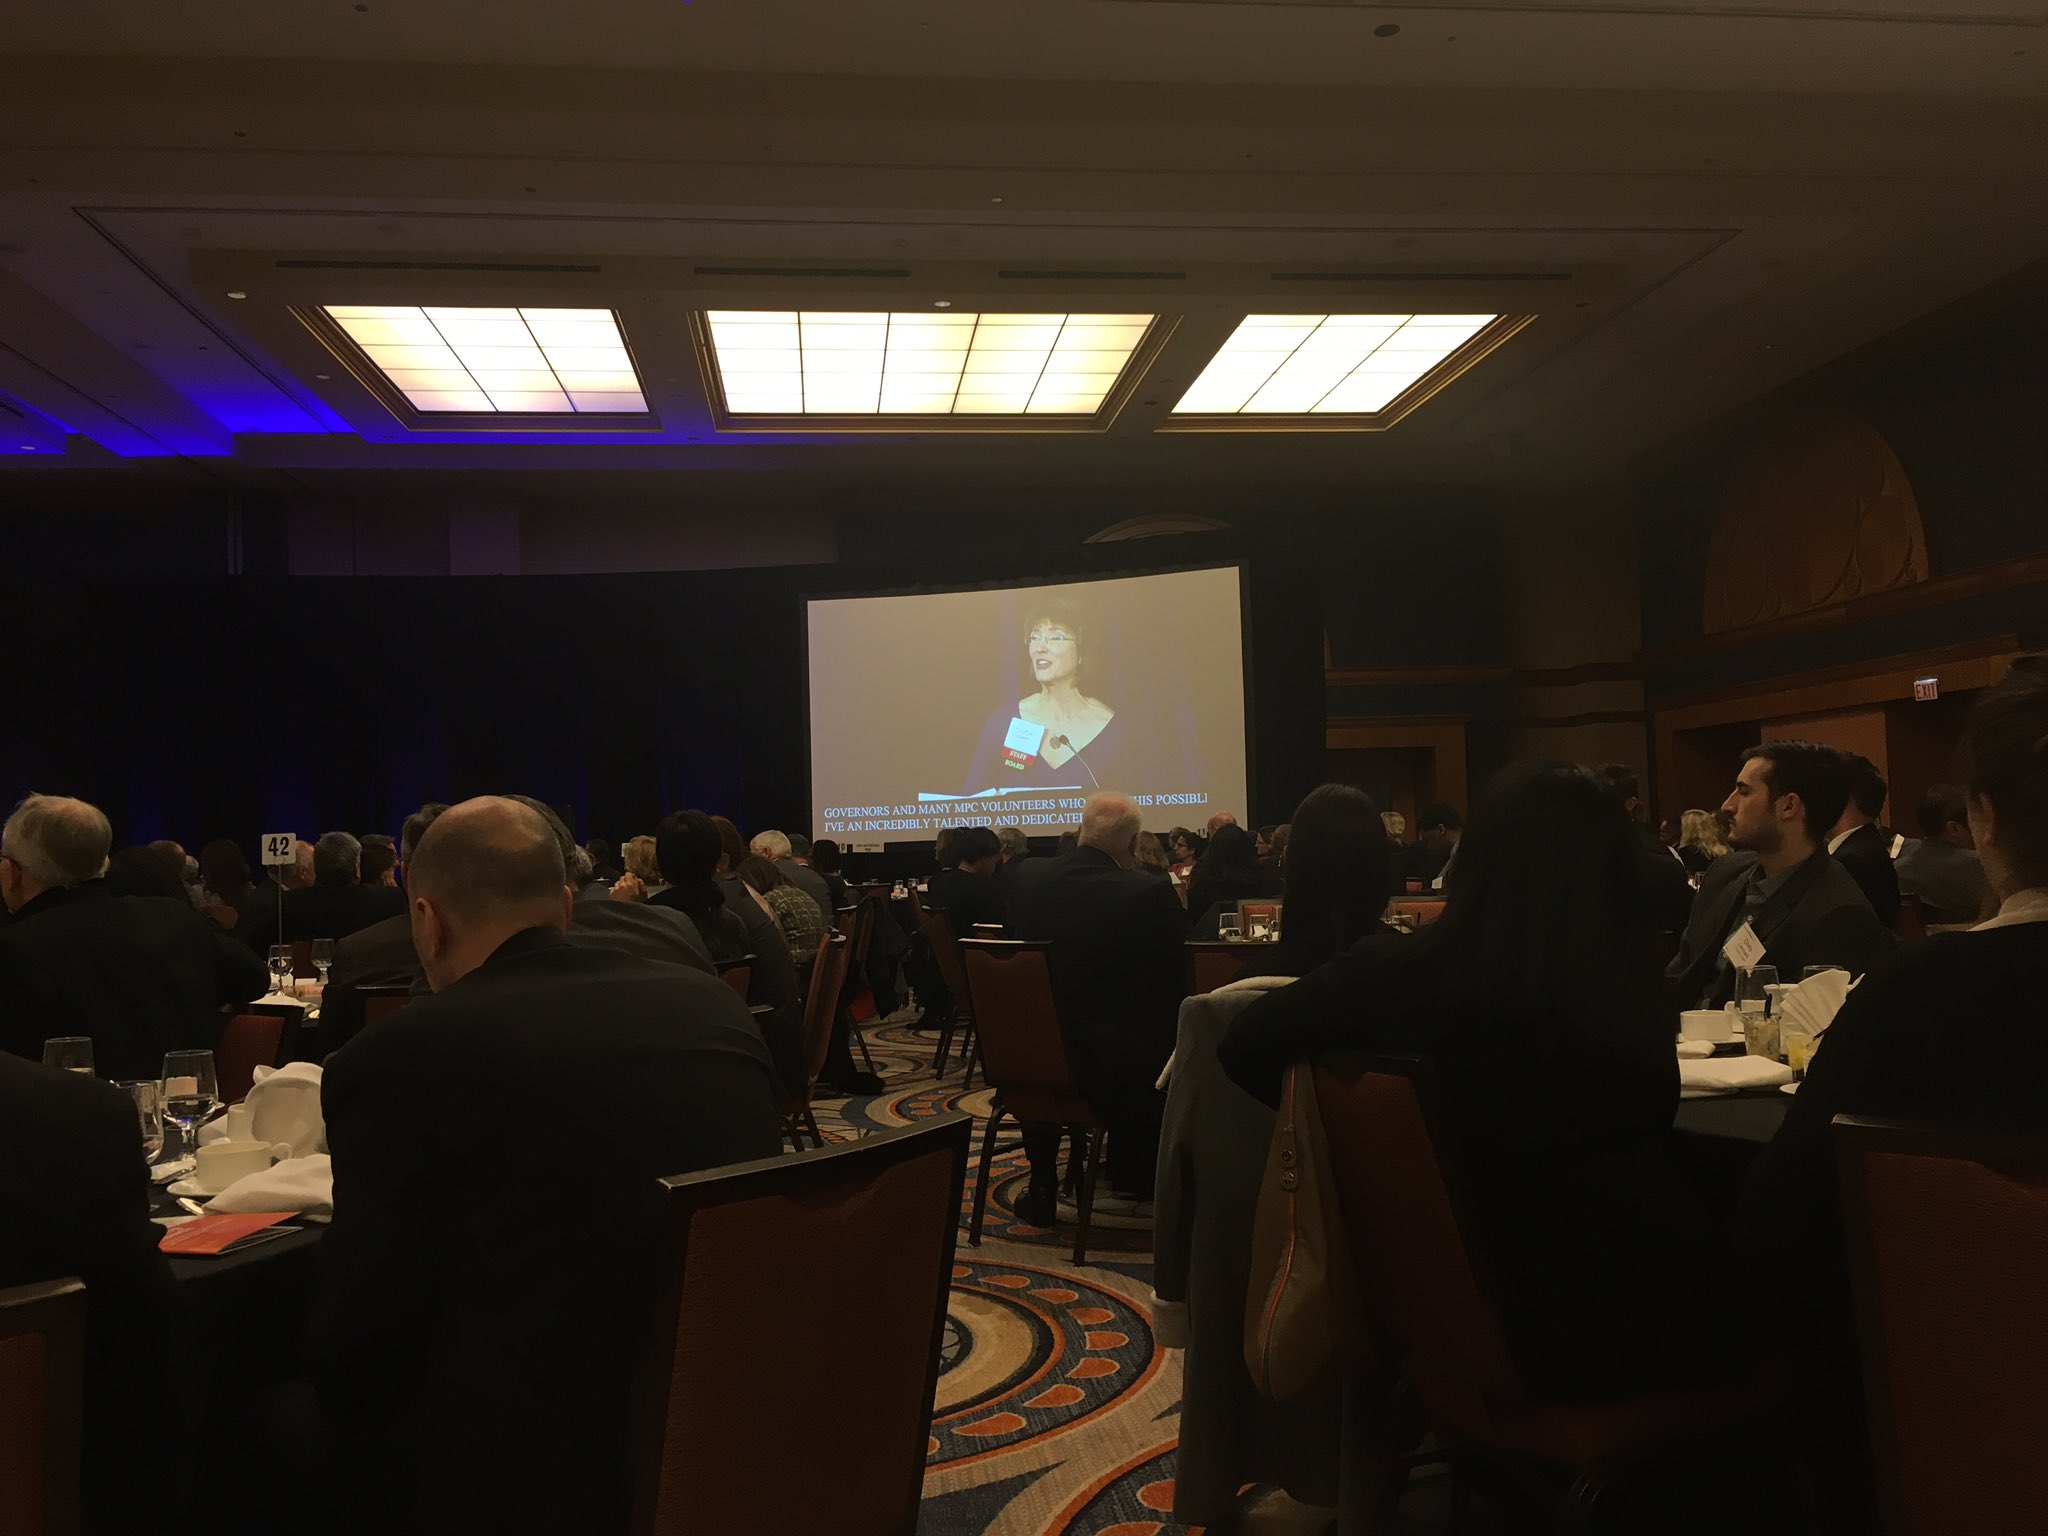 MPC Pres @MarySueMPC thanks our audience, speakers and sponsors for a deeply personal and engaging #MPCLuncheon. Thank you! https://t.co/B2e24EJgml